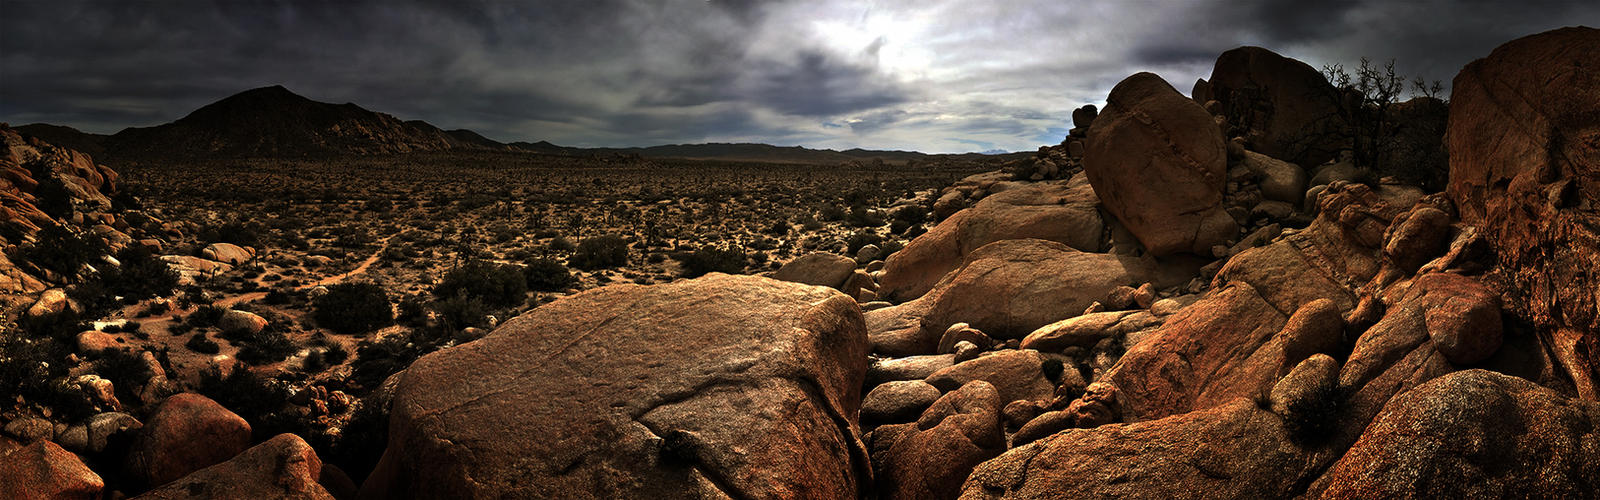 mojave desert scenery wallpaper - photo #19